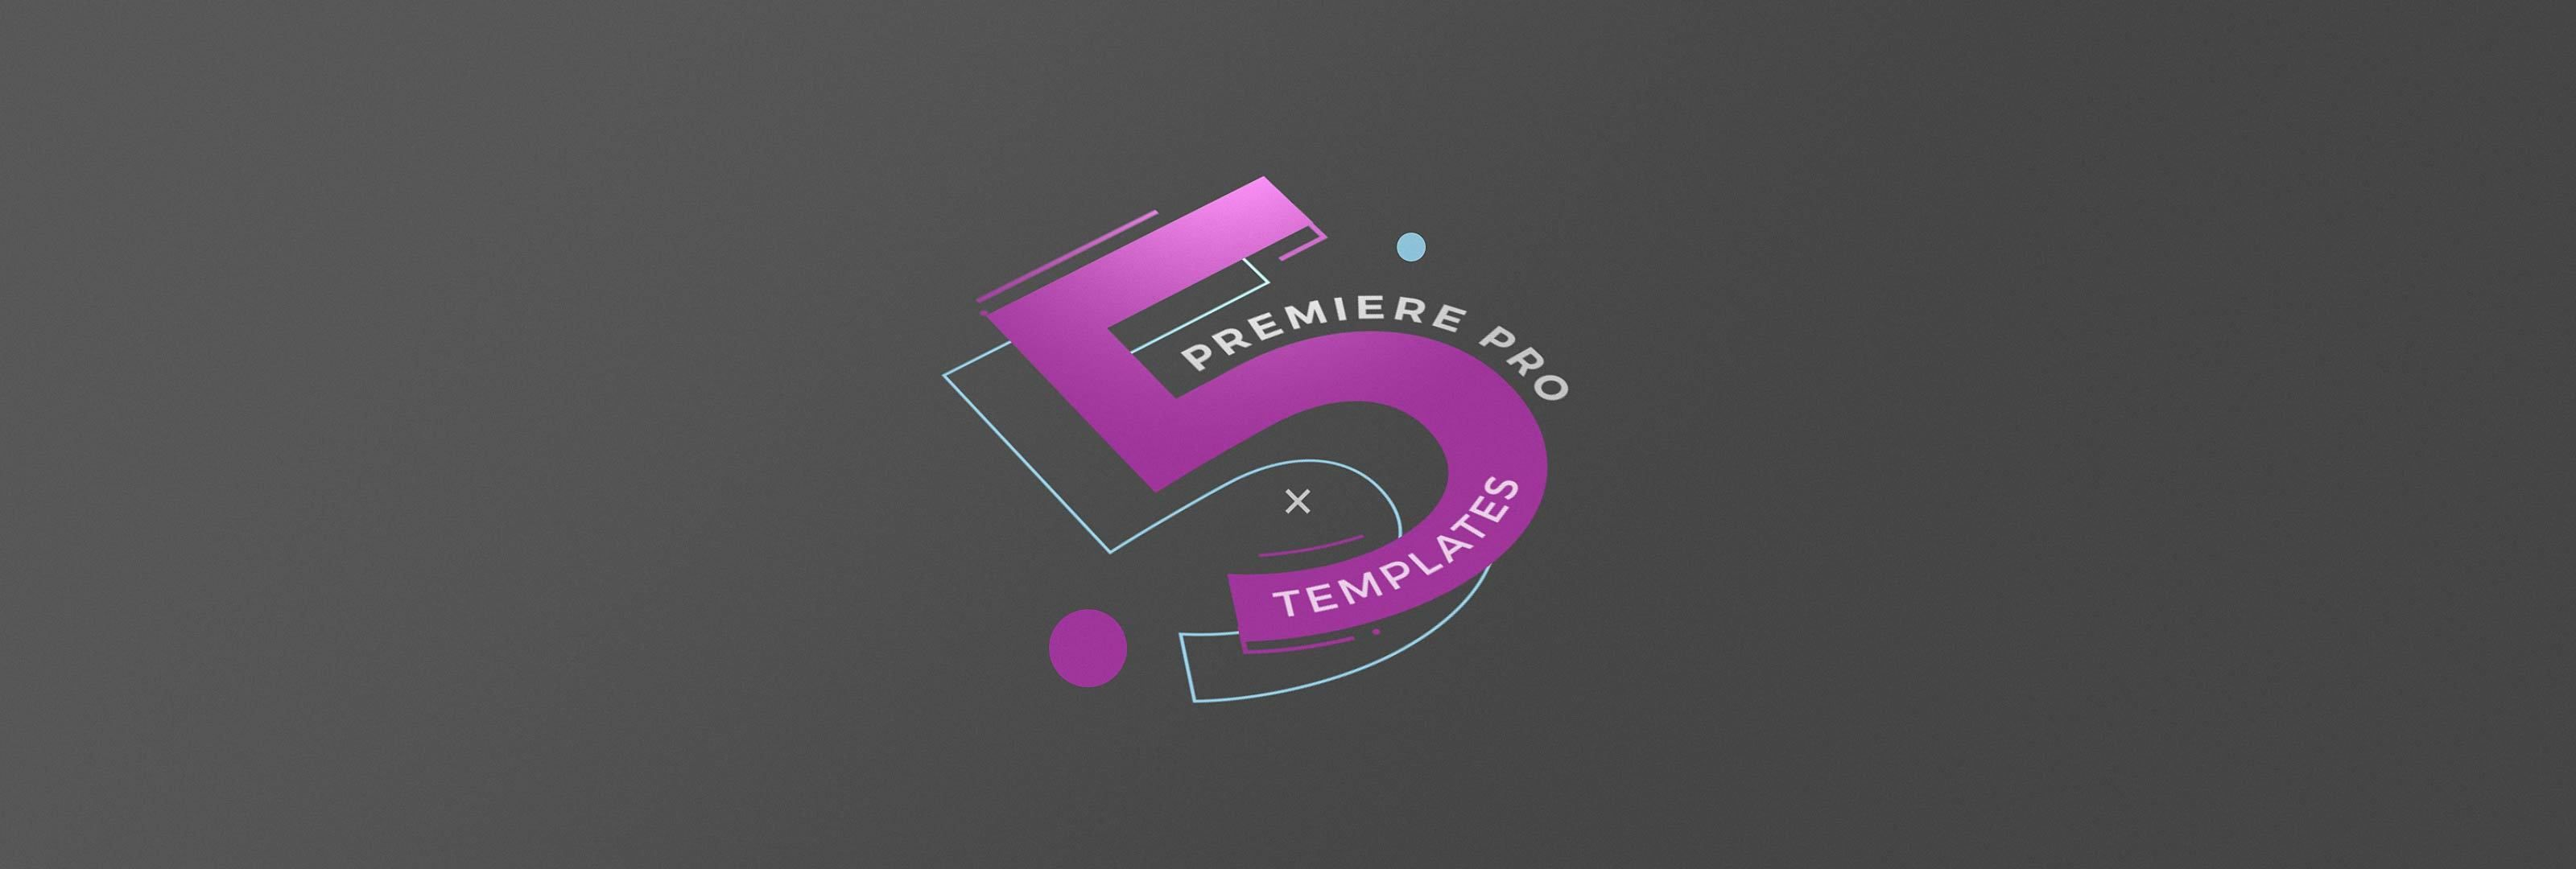 5 premiere pro title templates you can use again again pinterest 5 premiere pro title templates you can use again again videoediting motiongraphics maxwellsz